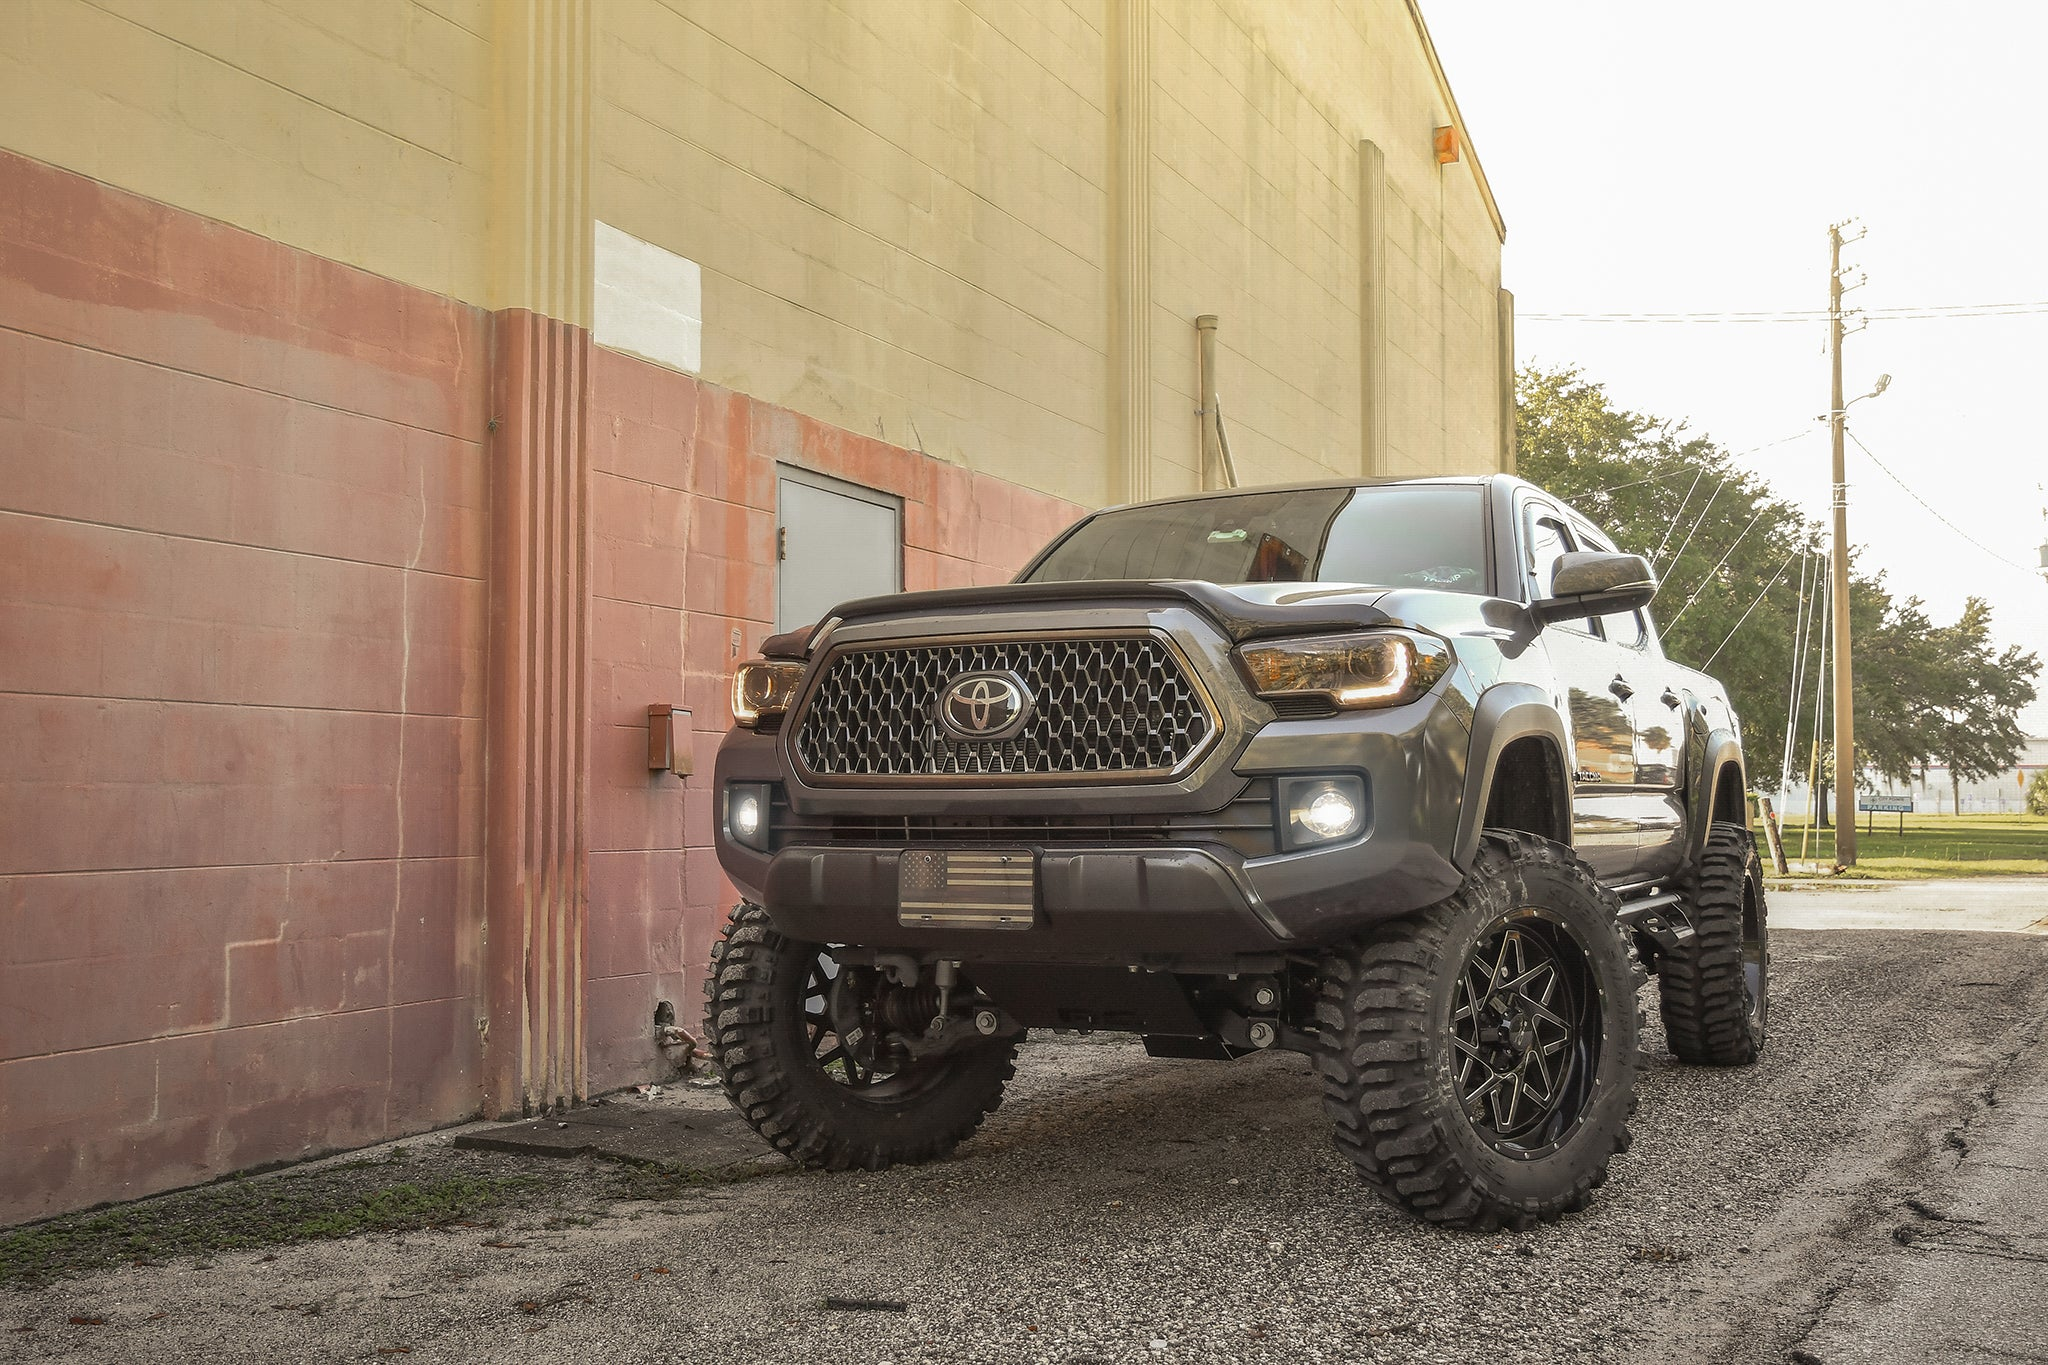 Gallery | Toyota Tacoma on HD OFF-ROAD Gridlock w/ 35 inch boggers